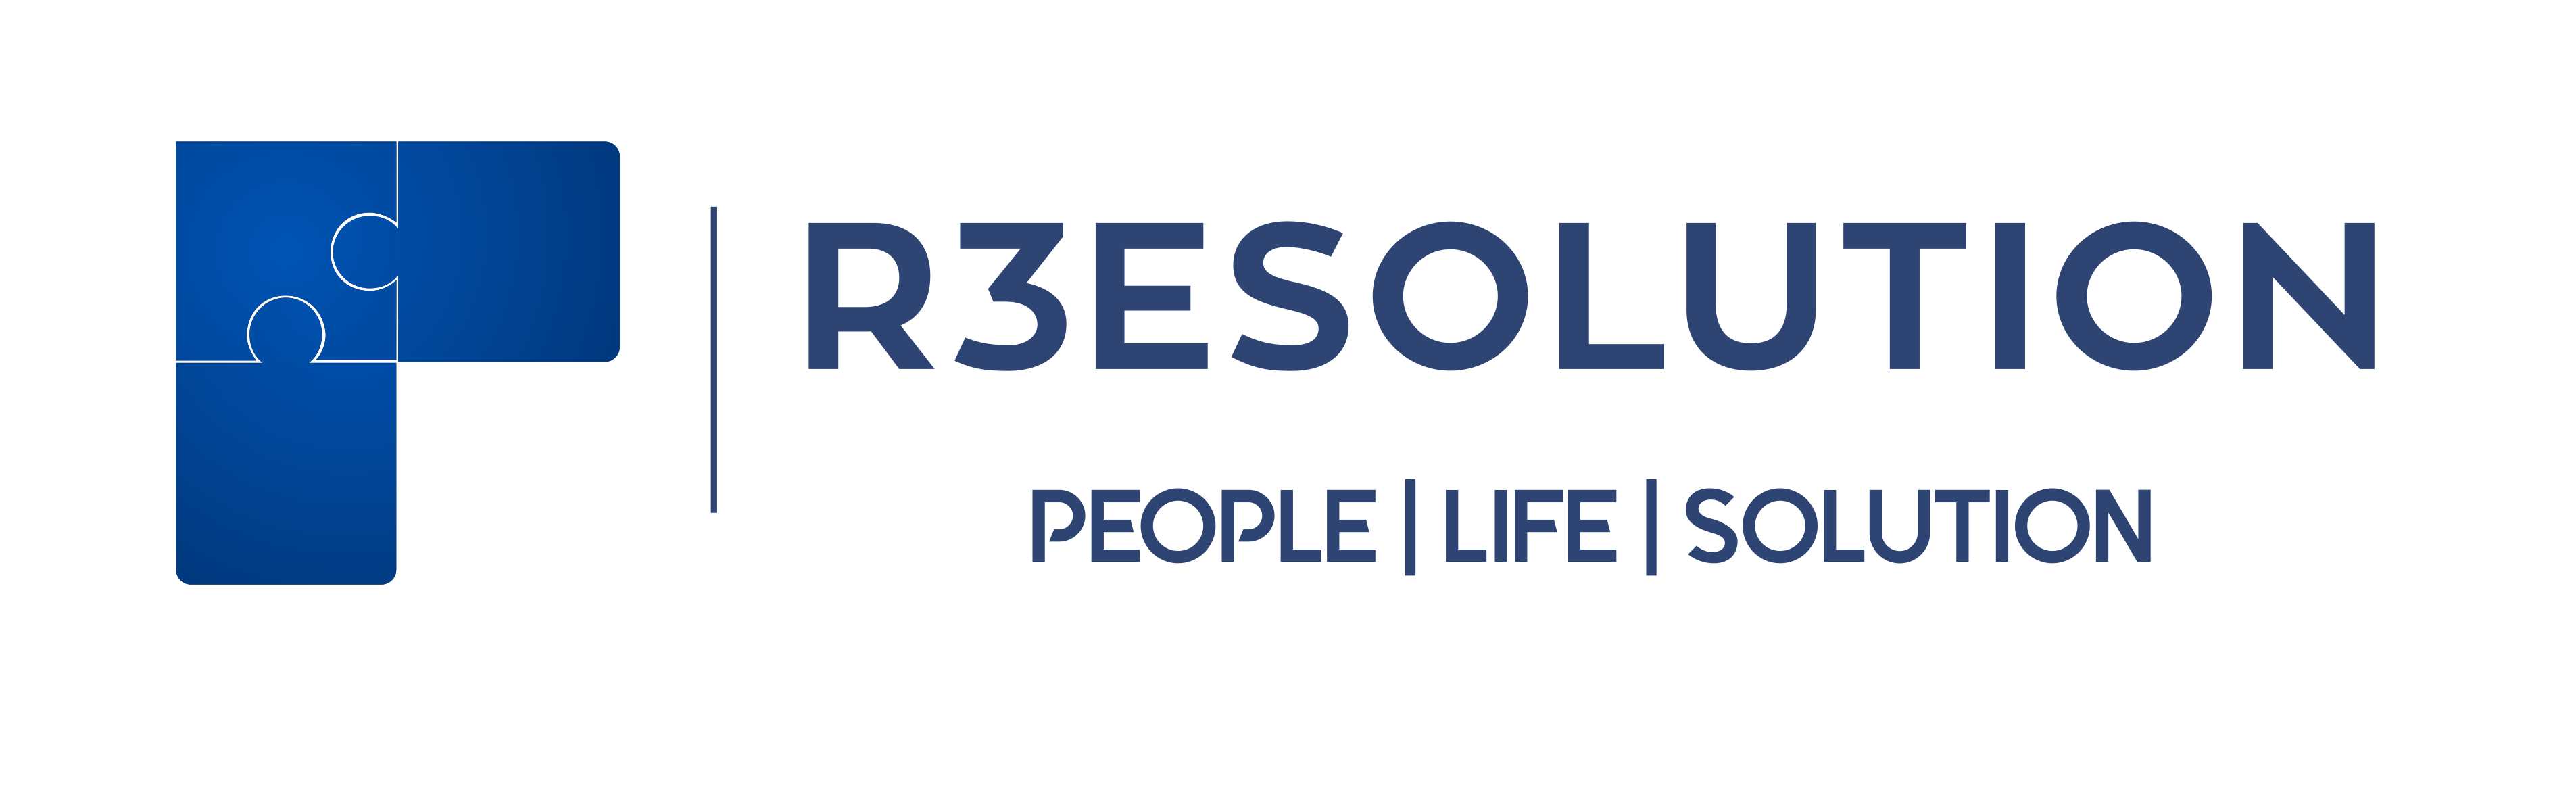 R3esolution Infotech Private Limited